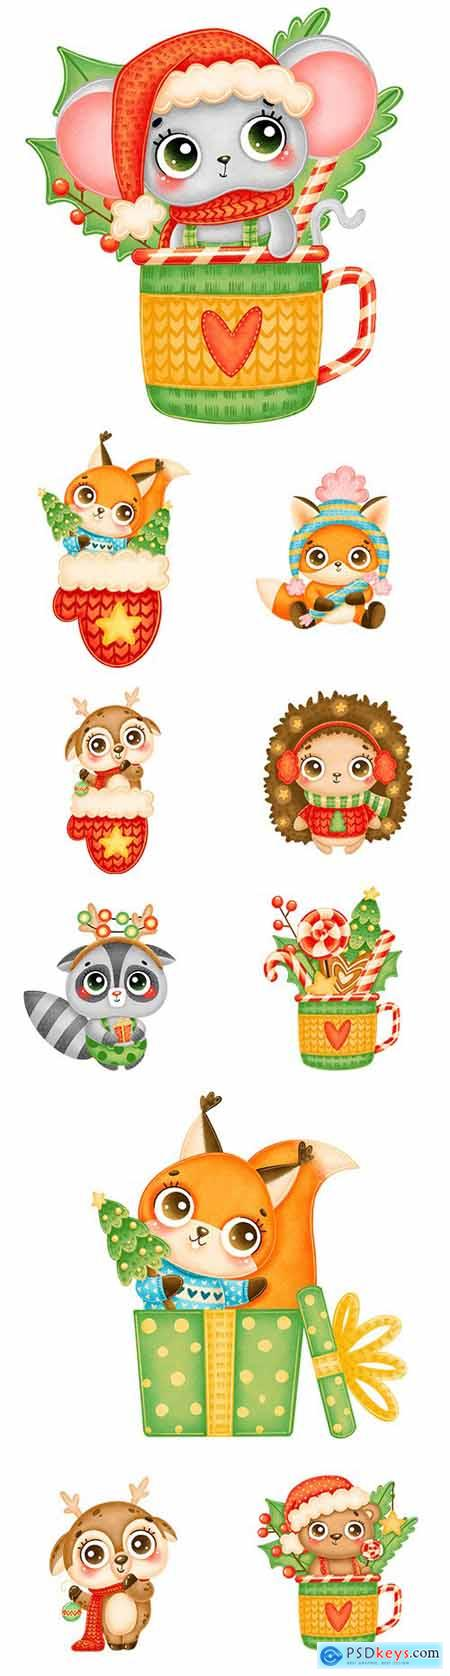 Cute cartoon animals in red hat and mittens Christmas illustrations 2